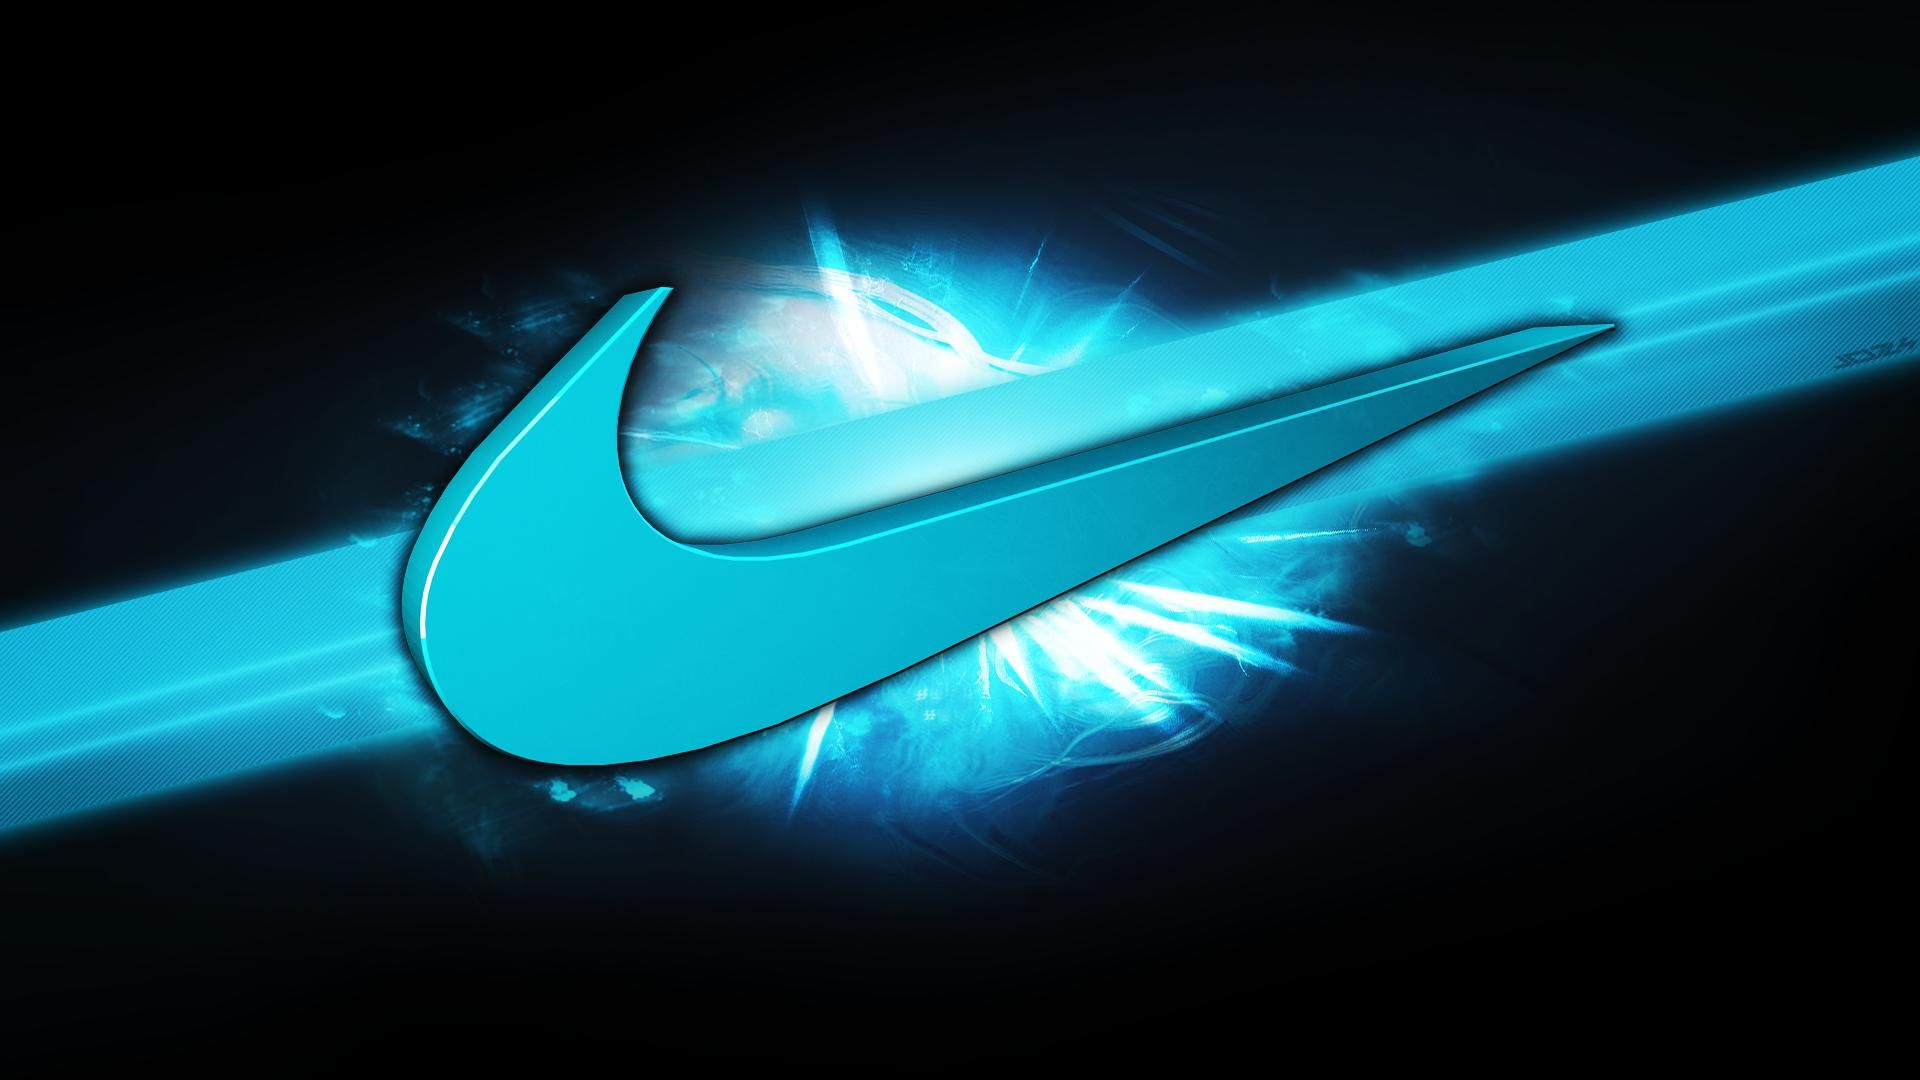 Ideas About Nike Wallpaper On Pinterest Nike Logo 750 1334 Nike Iphone Backgrounds 41 Wallpapers Adora Nike Wallpaper Nike Wallpaper Backgrounds Nike Logo